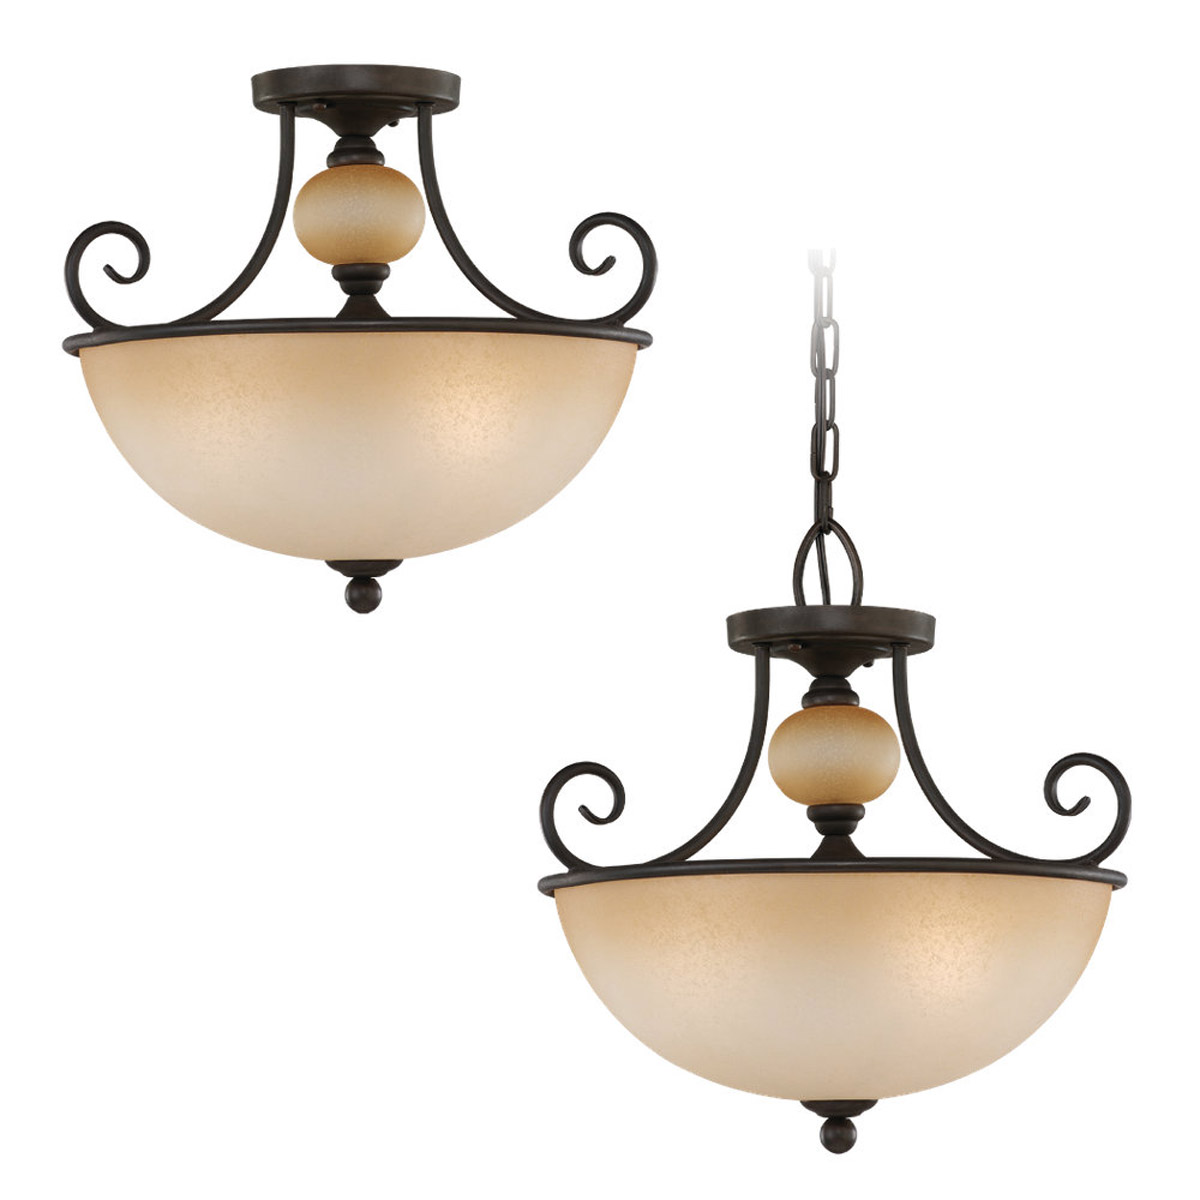 Sea Gull Lighting Montclaire 3 Light Pendant Convertible in Olde Iron 51105-72 photo